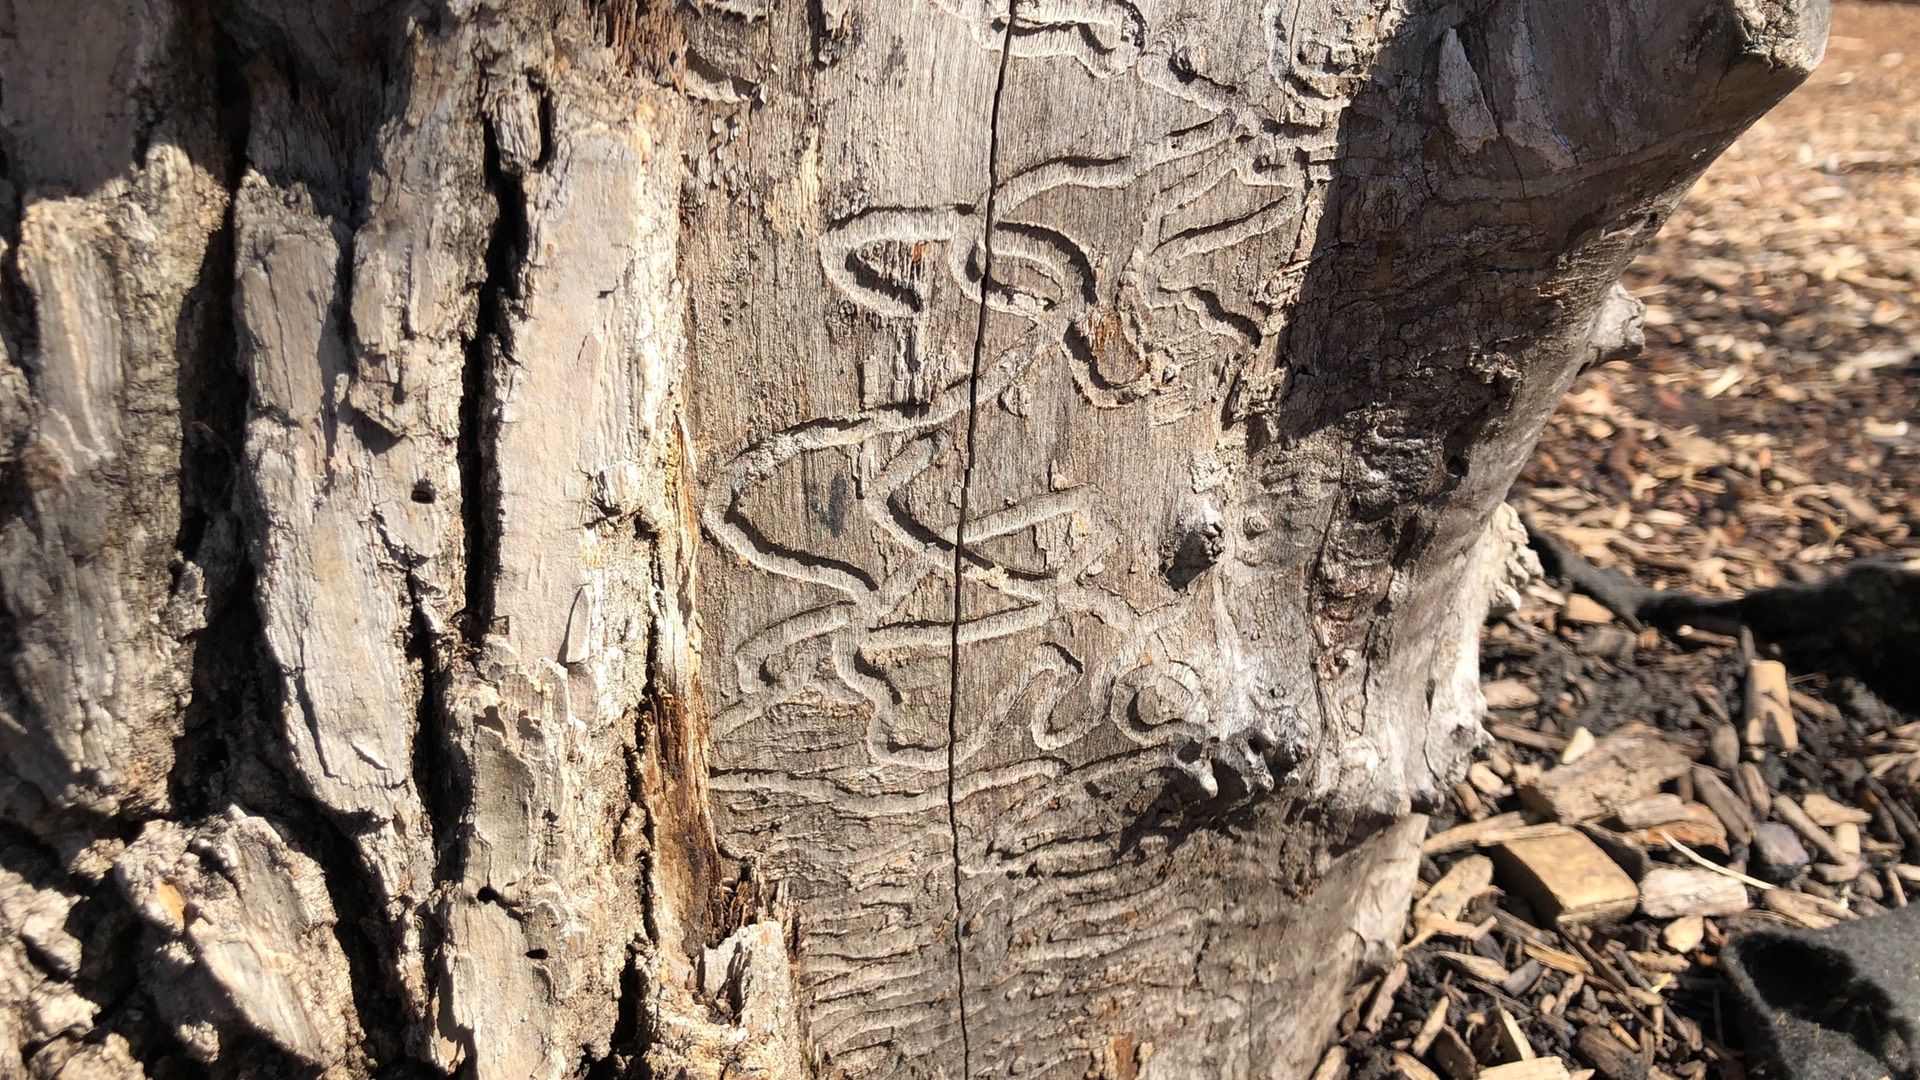 An ash tree stump, bearing the telltale signs of the destructive Emerald Ash Borer. (Patty Wetli / WTTW News)